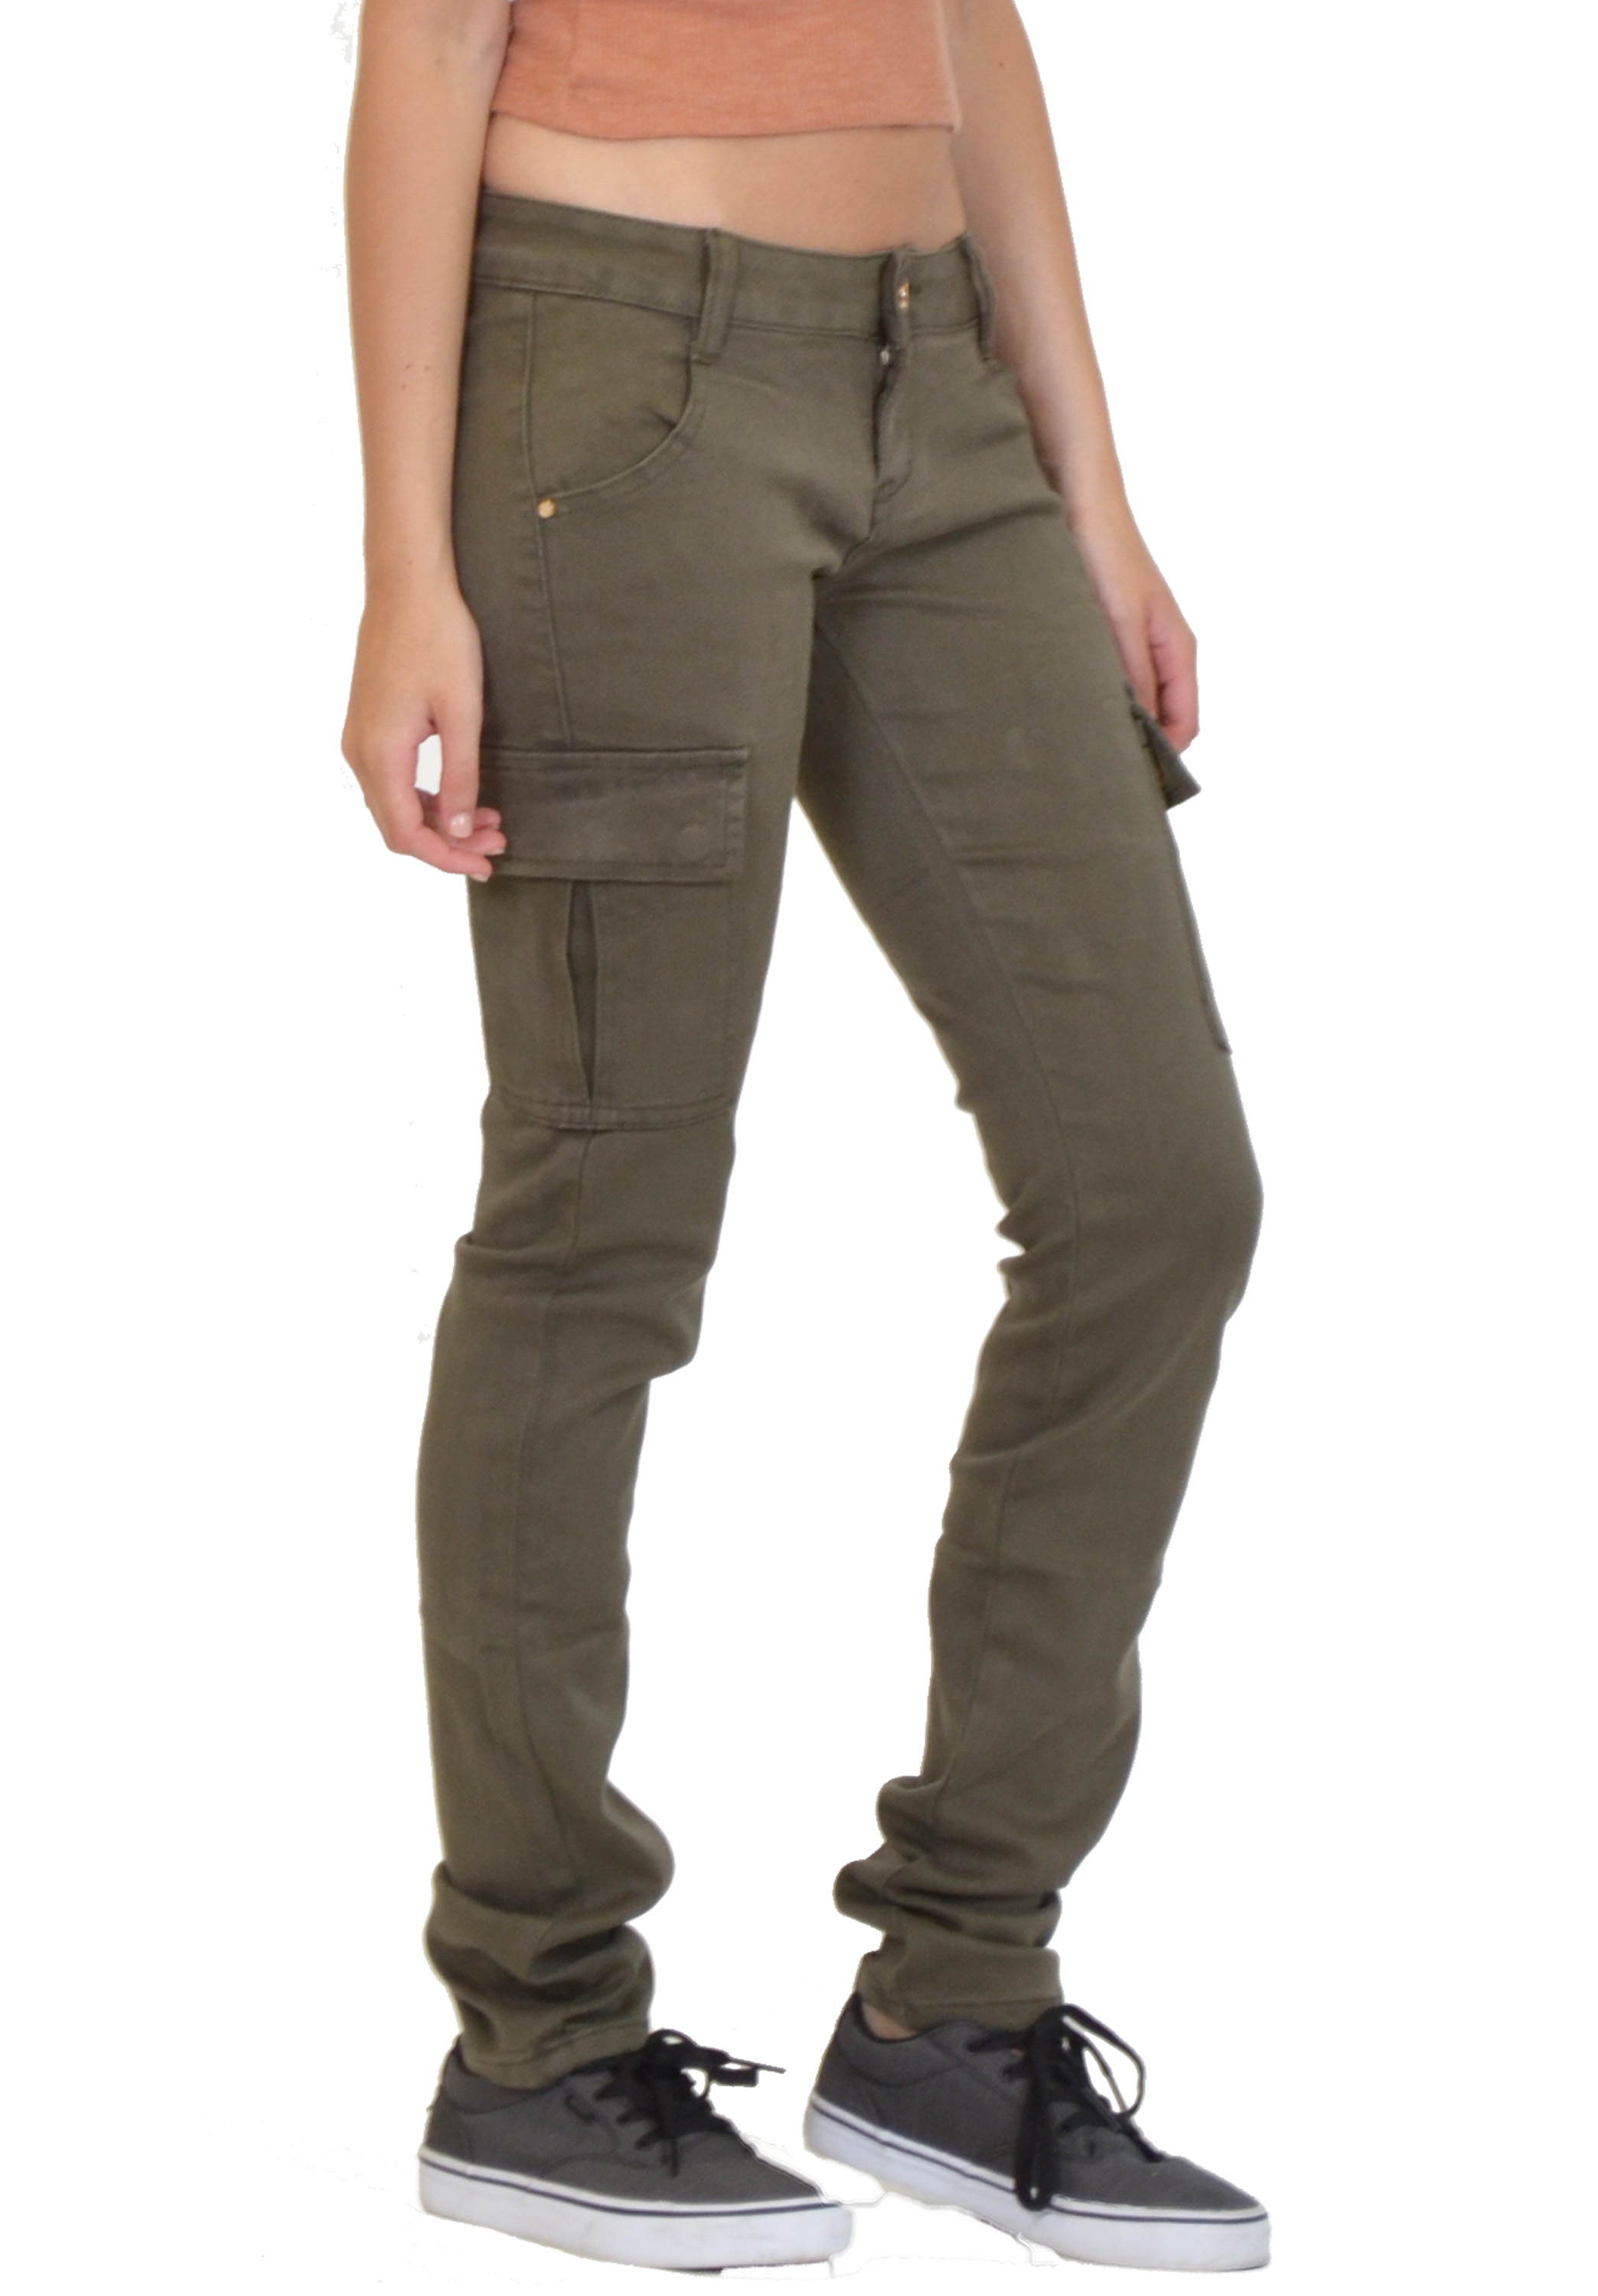 Khaki skinny cargo pants are perfect for outdoor weekends. The trim profile makes hiking through the underbrush snag-free, and the side pockets still have plenty of room for critical gear, like your GPS.